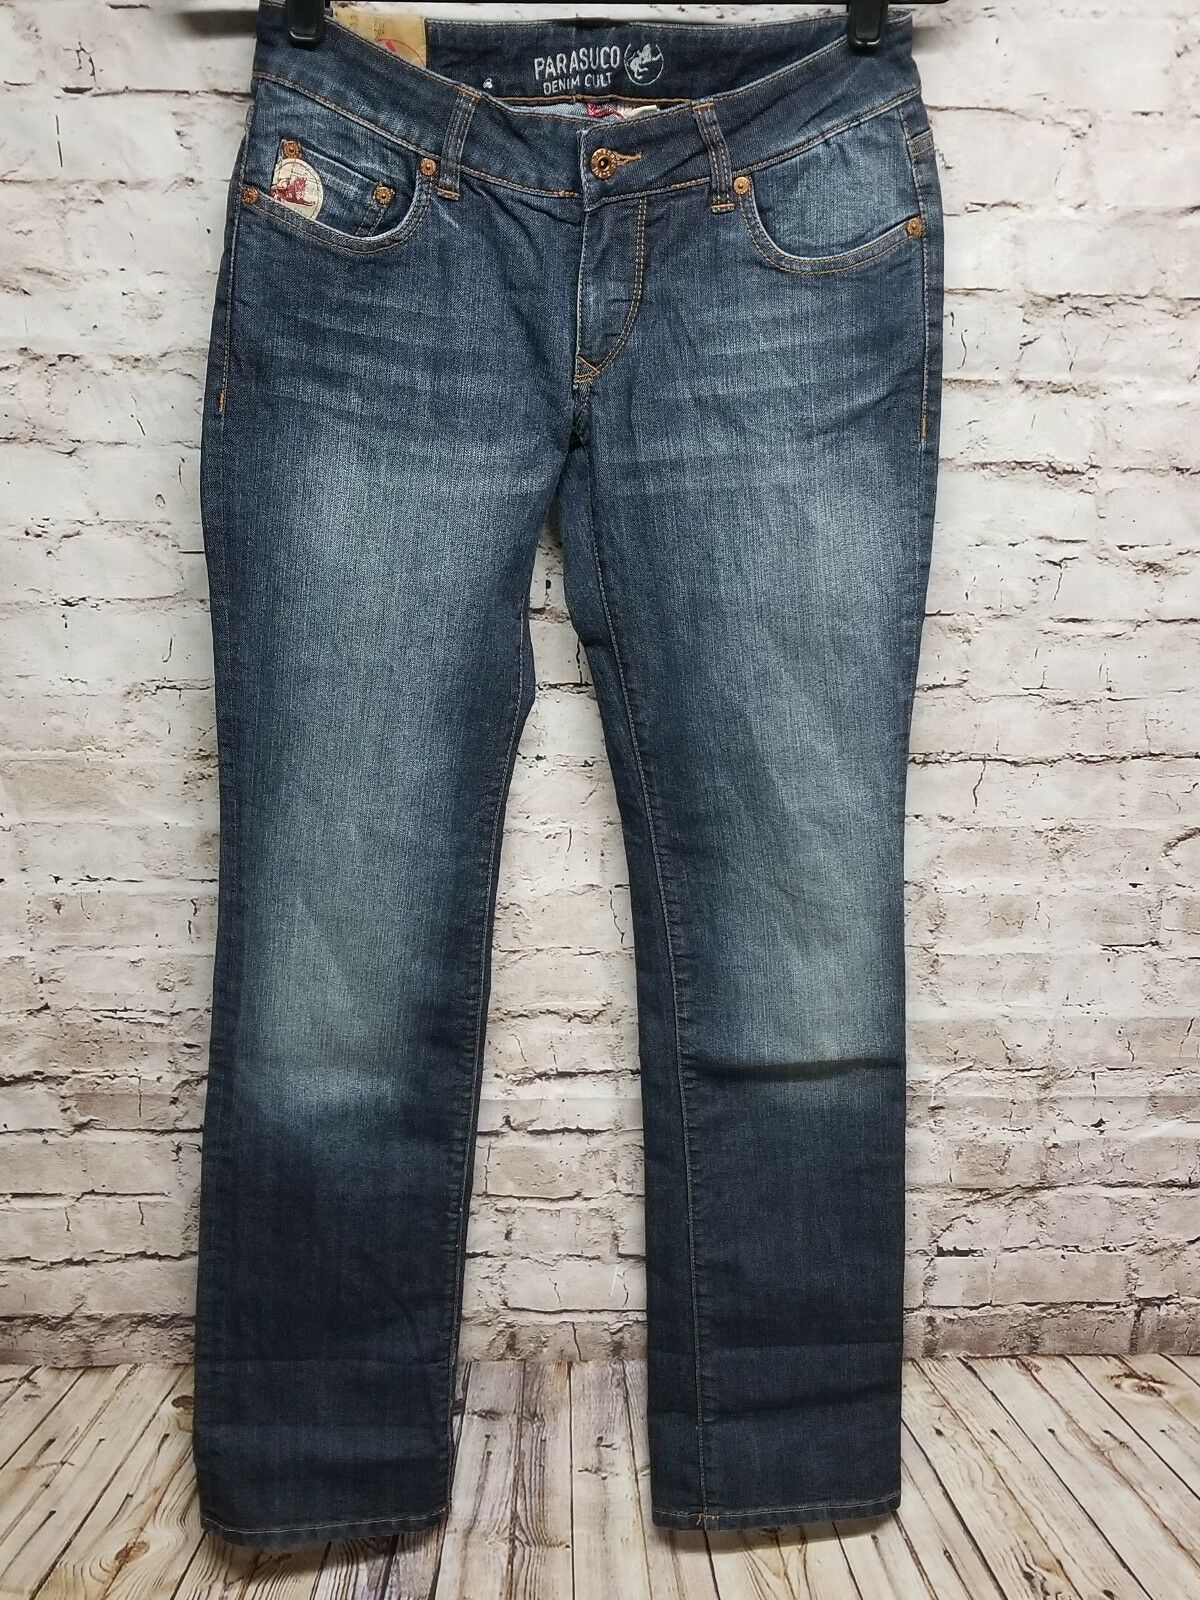 Parasuco Denim Cult dark bluee Jean pants Womens distressed size 28 rare vintage